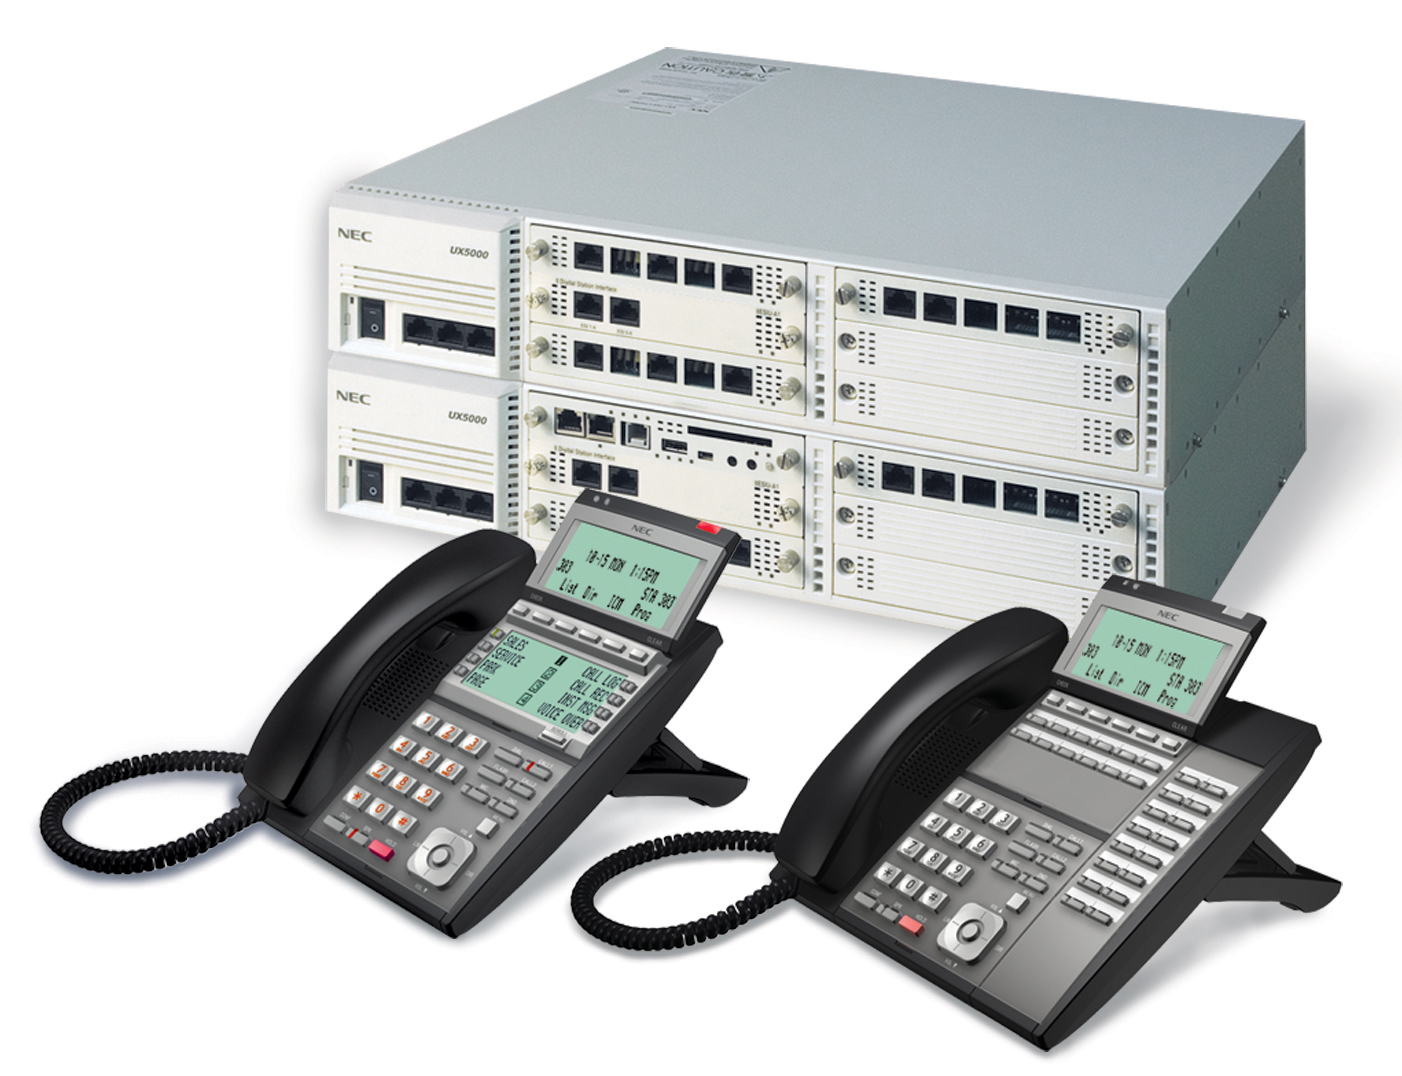 nec ux5000 superior telephone systems rh superiortelephone com NEC UX5000 Phone Mobile nec ux5000 user manual